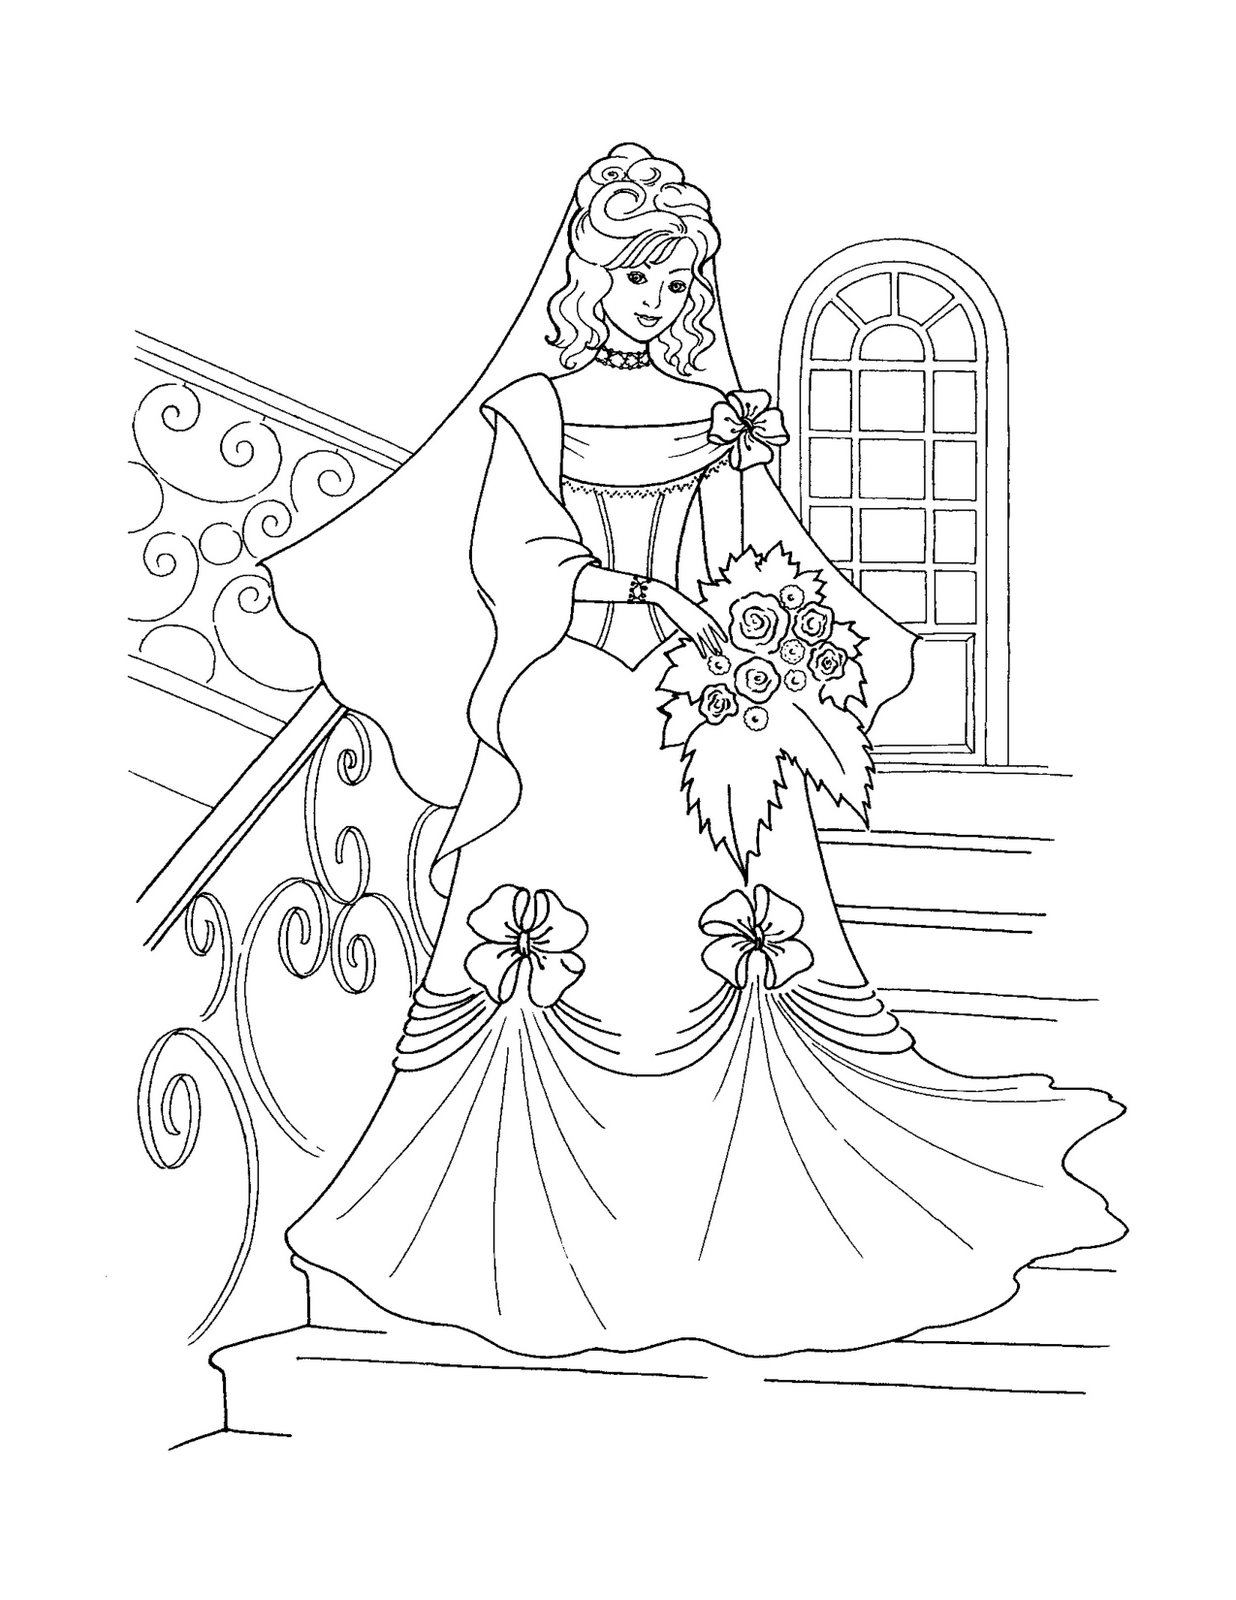 Simple Disney Castle Drawing At Getdrawings Com Free For Personal